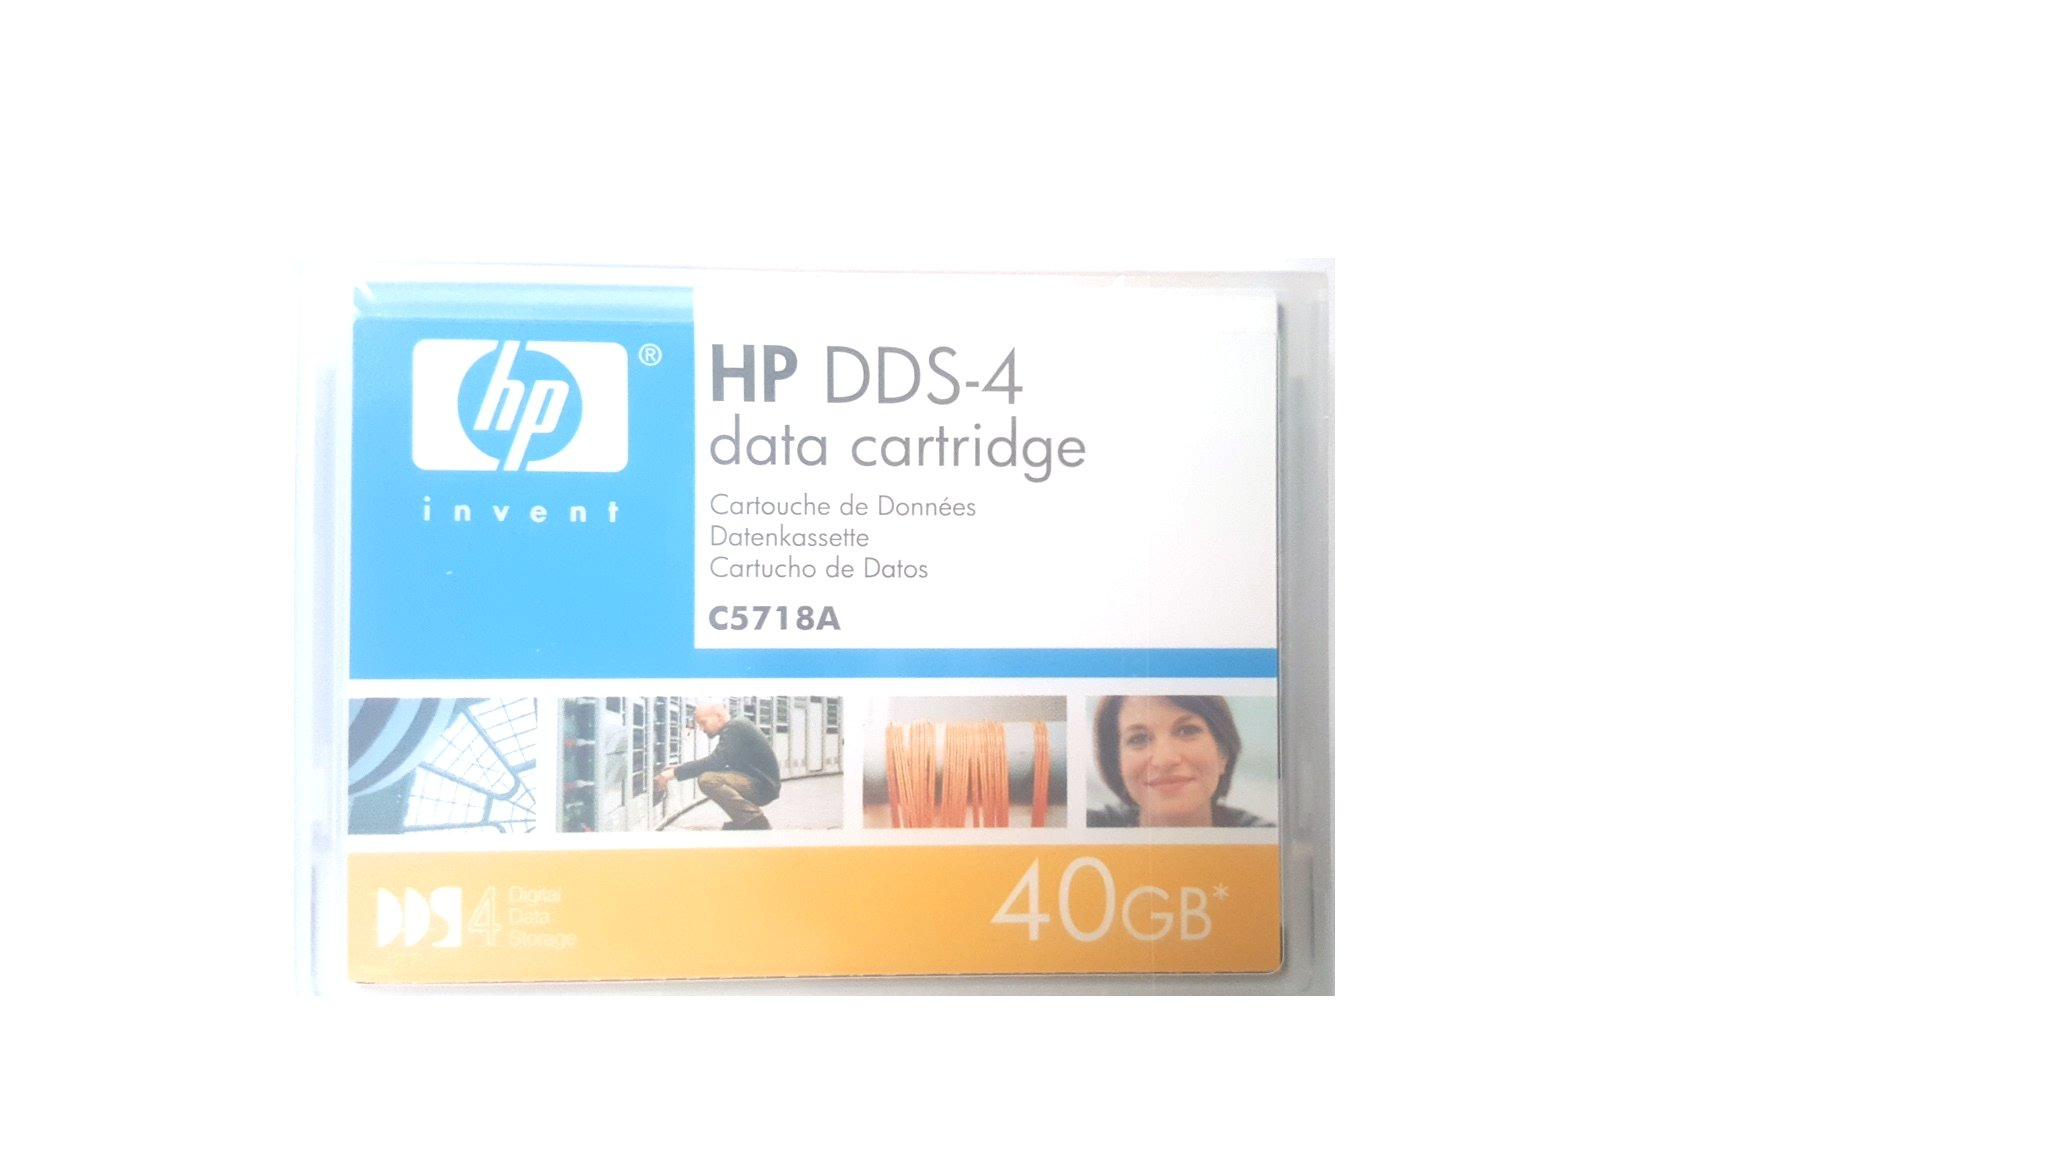 HPE Storage BTO C5718A DDS 4 40GB 150M Data Cartridge by HEW